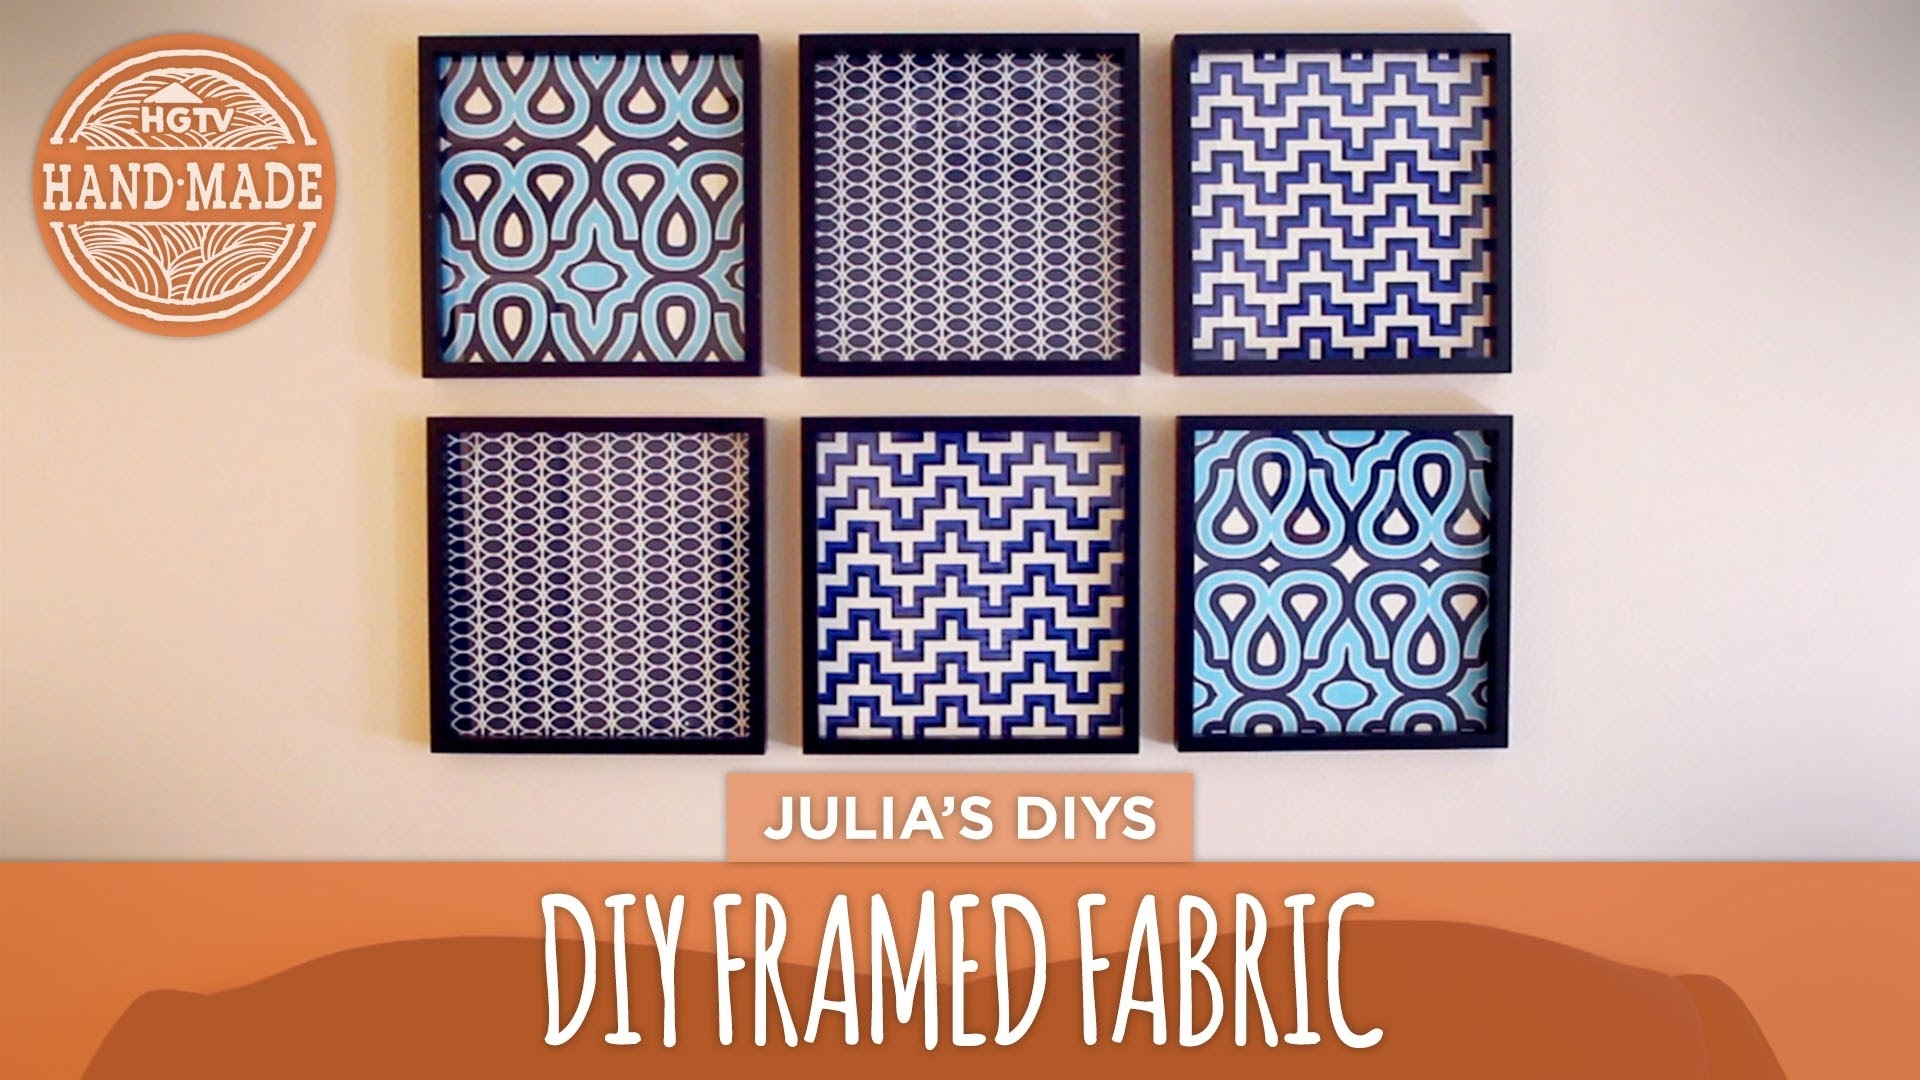 Diy Framed Fabric Gallery Wall – Hgtv Handmade – Youtube Regarding Most Current Framed Textile Wall Art (View 3 of 15)